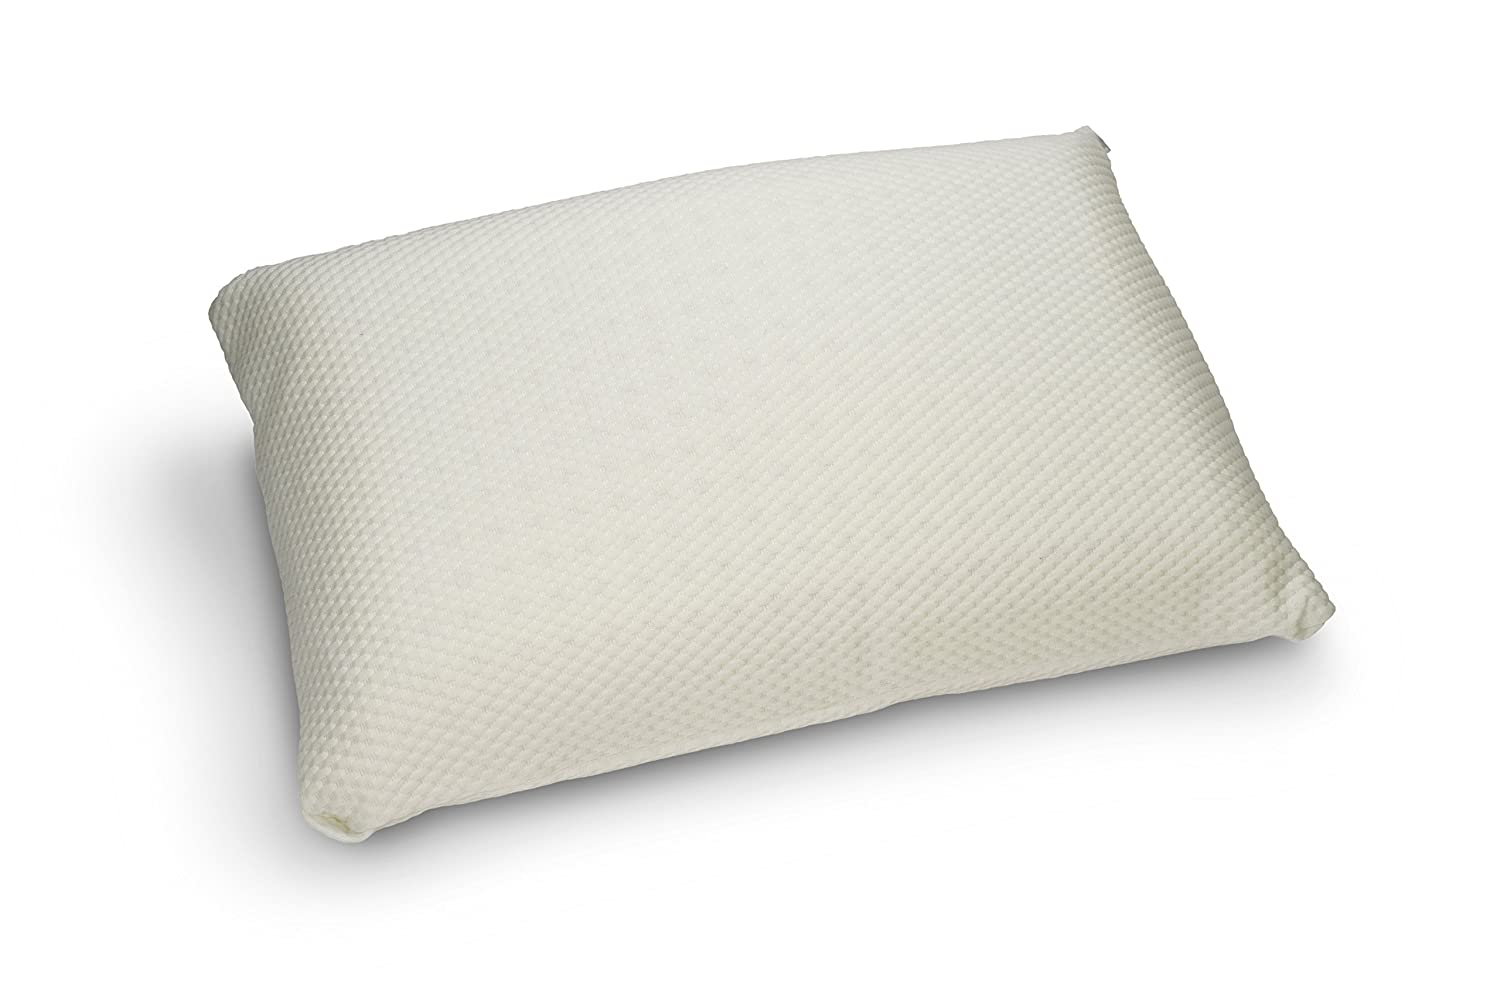 super foam king white hpxl memory x large ww size the pillow piece willow reveries tww products euro